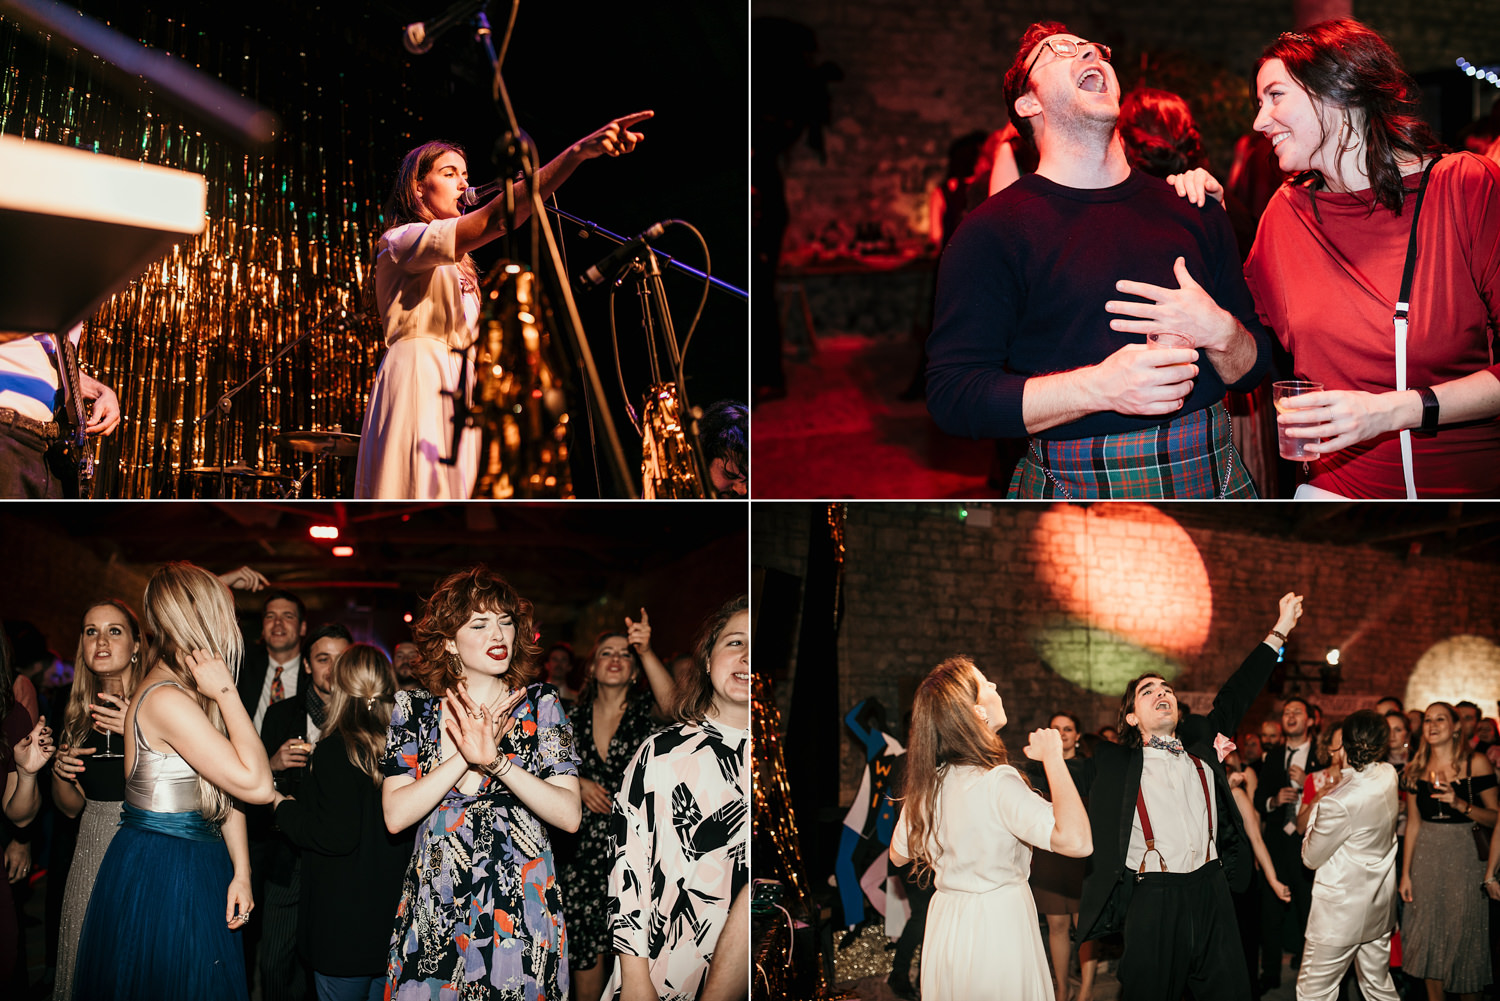 singers and guests during a concert theme wedding at Stroud Wedding in Cotswolds